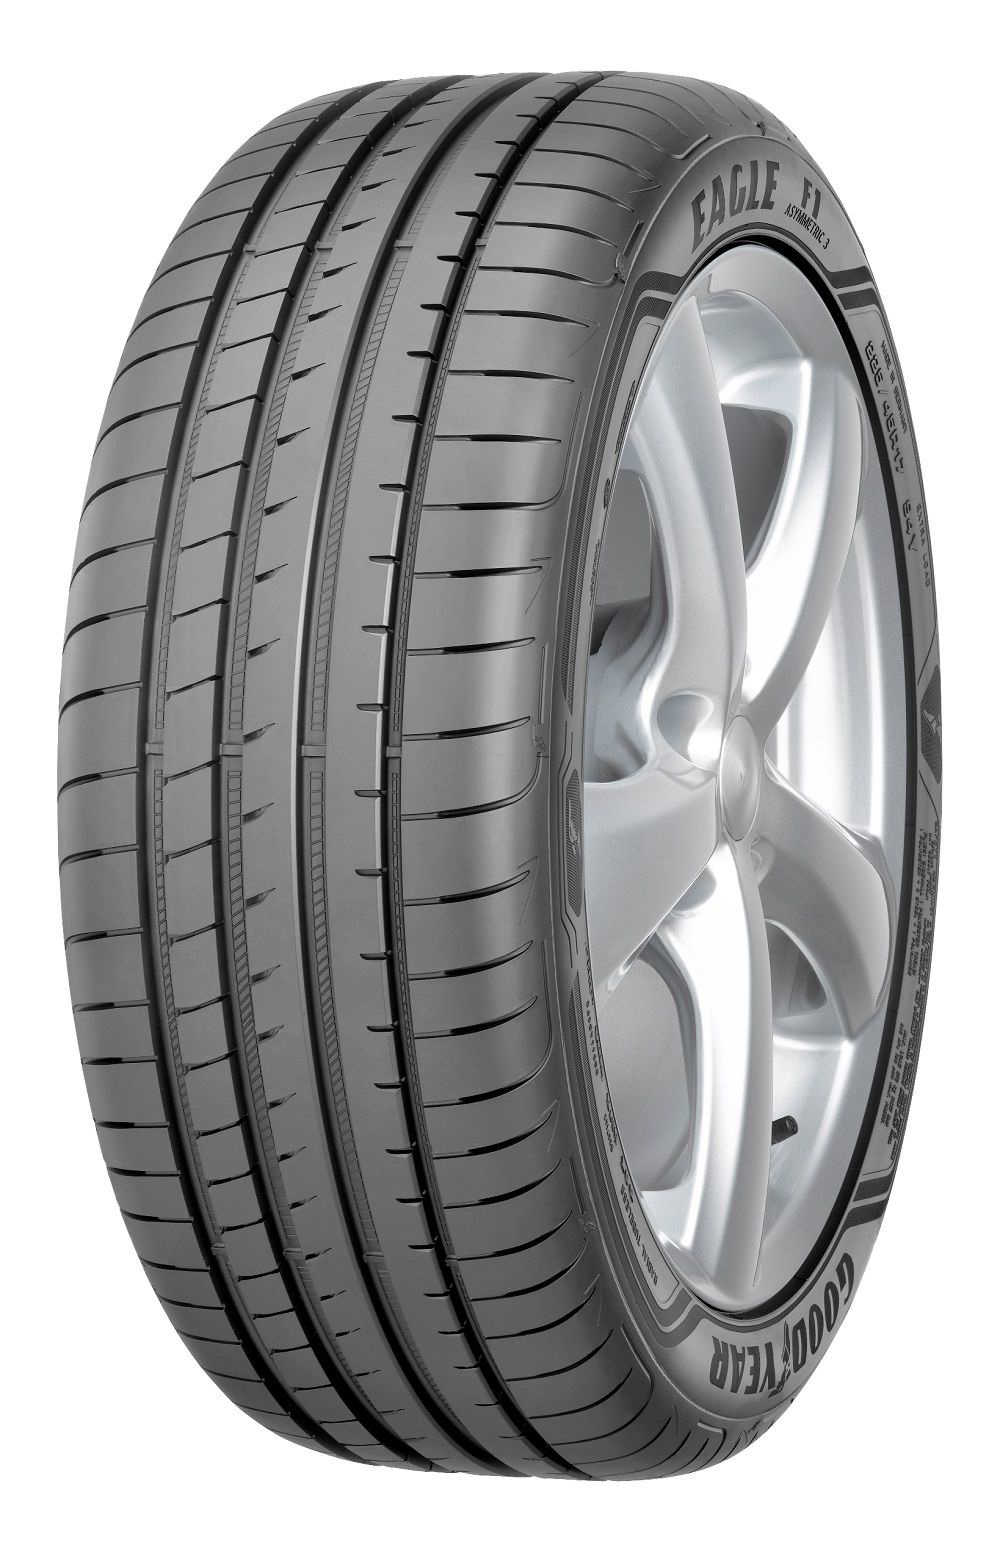 Anvelopa Vara Goodyear F1 Asymetric 3 XL 245/45R19 102Y